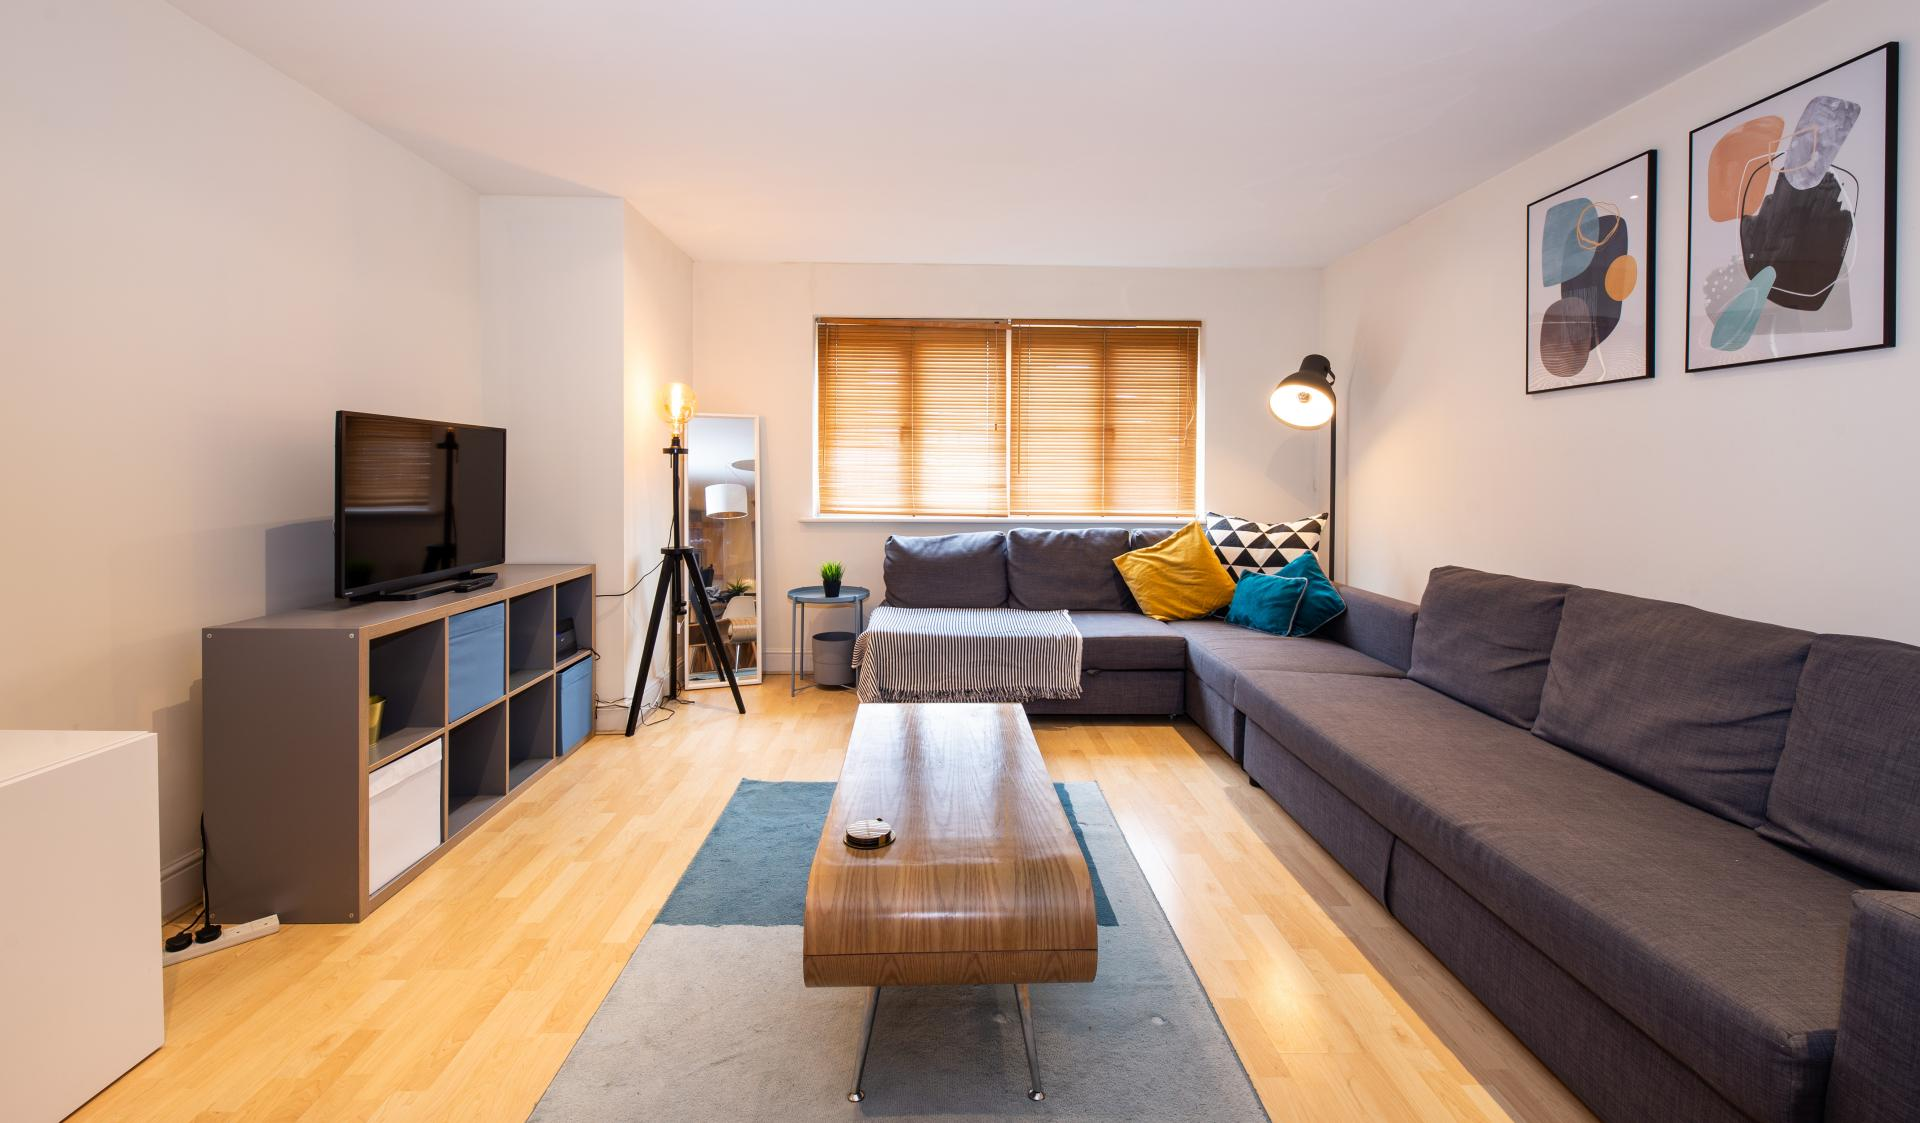 Living / Dining area at Guildown Court Apartment, Centre, Guildford - Citybase Apartments